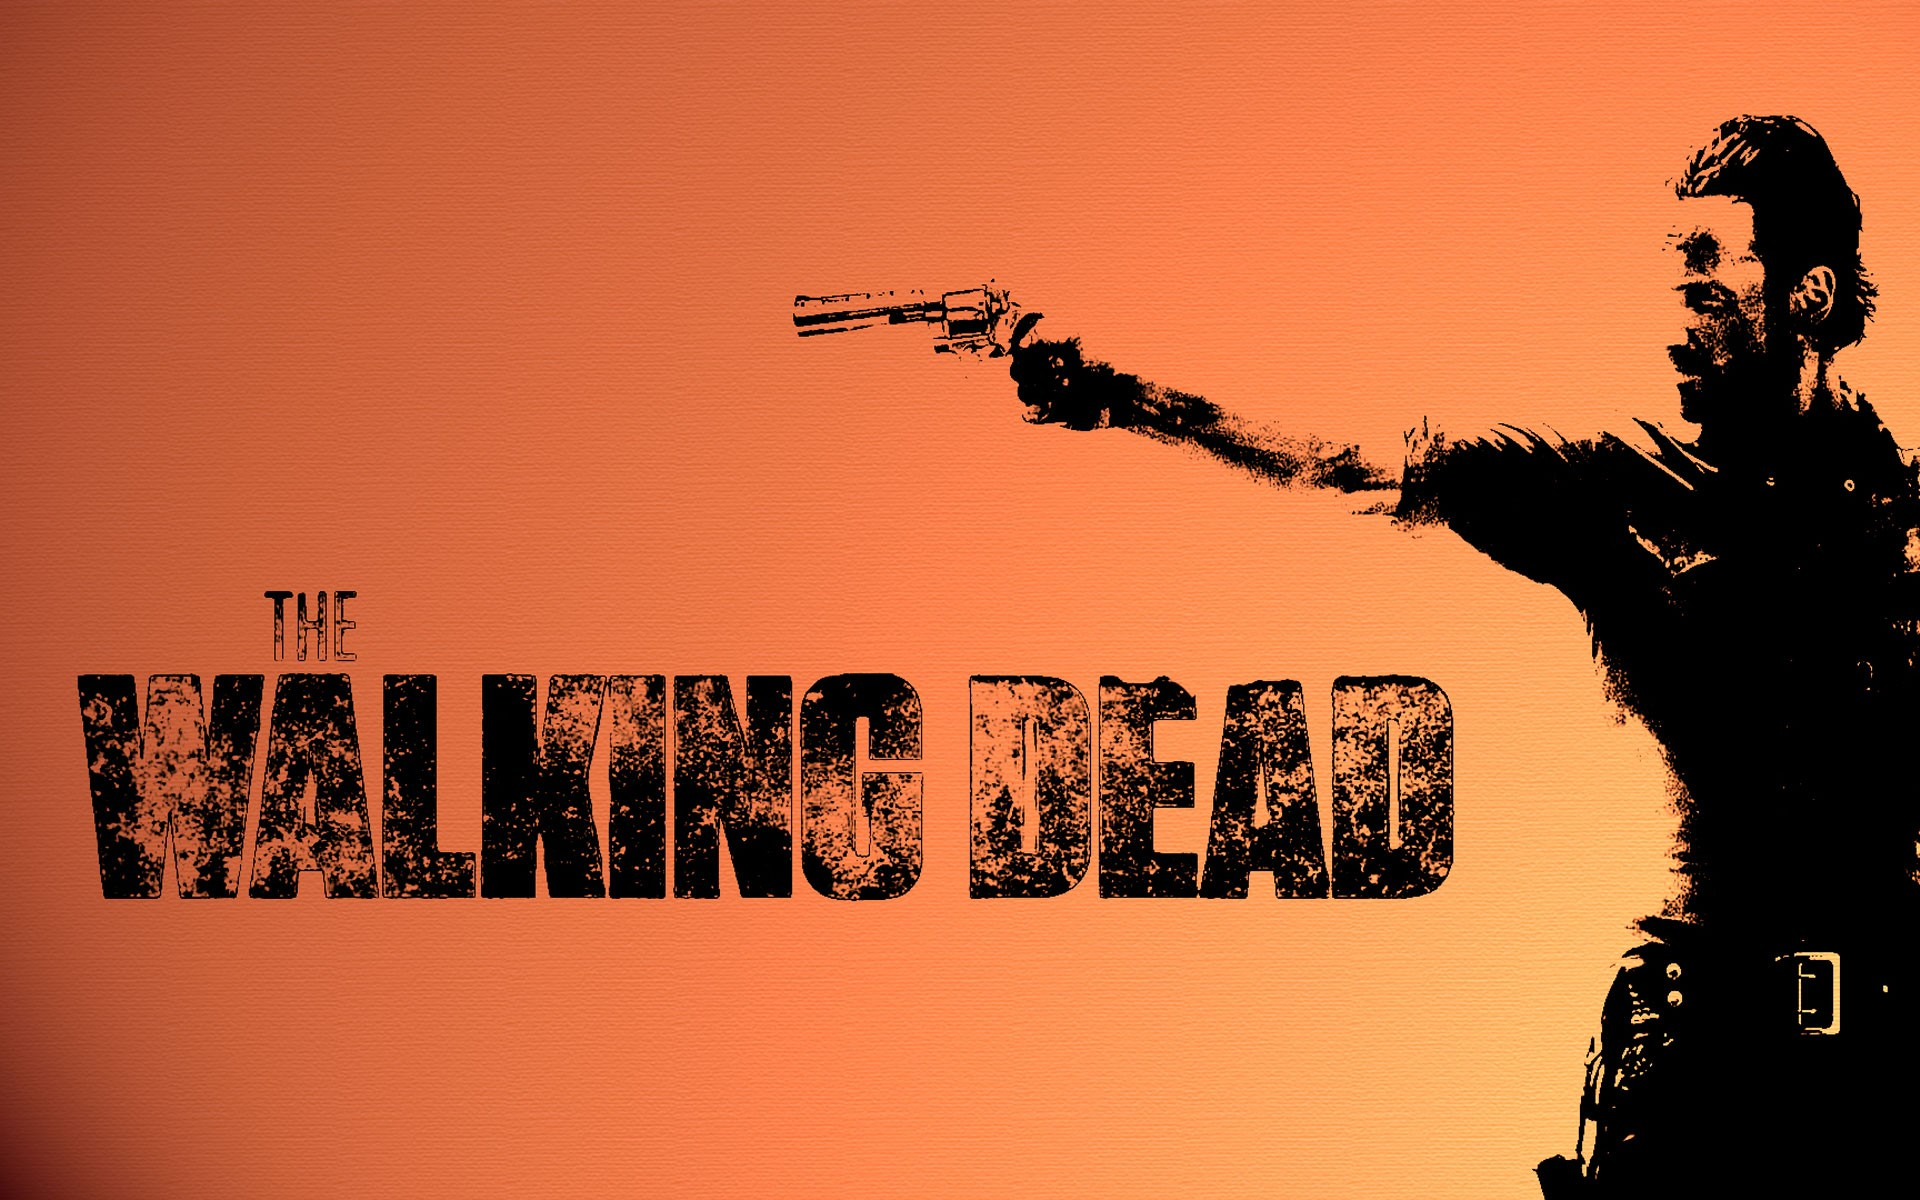 Walking dead wallpaper download free amazing full hd 1920x1200 the walking dead televion zombies weapons guns wallpaper background voltagebd Choice Image